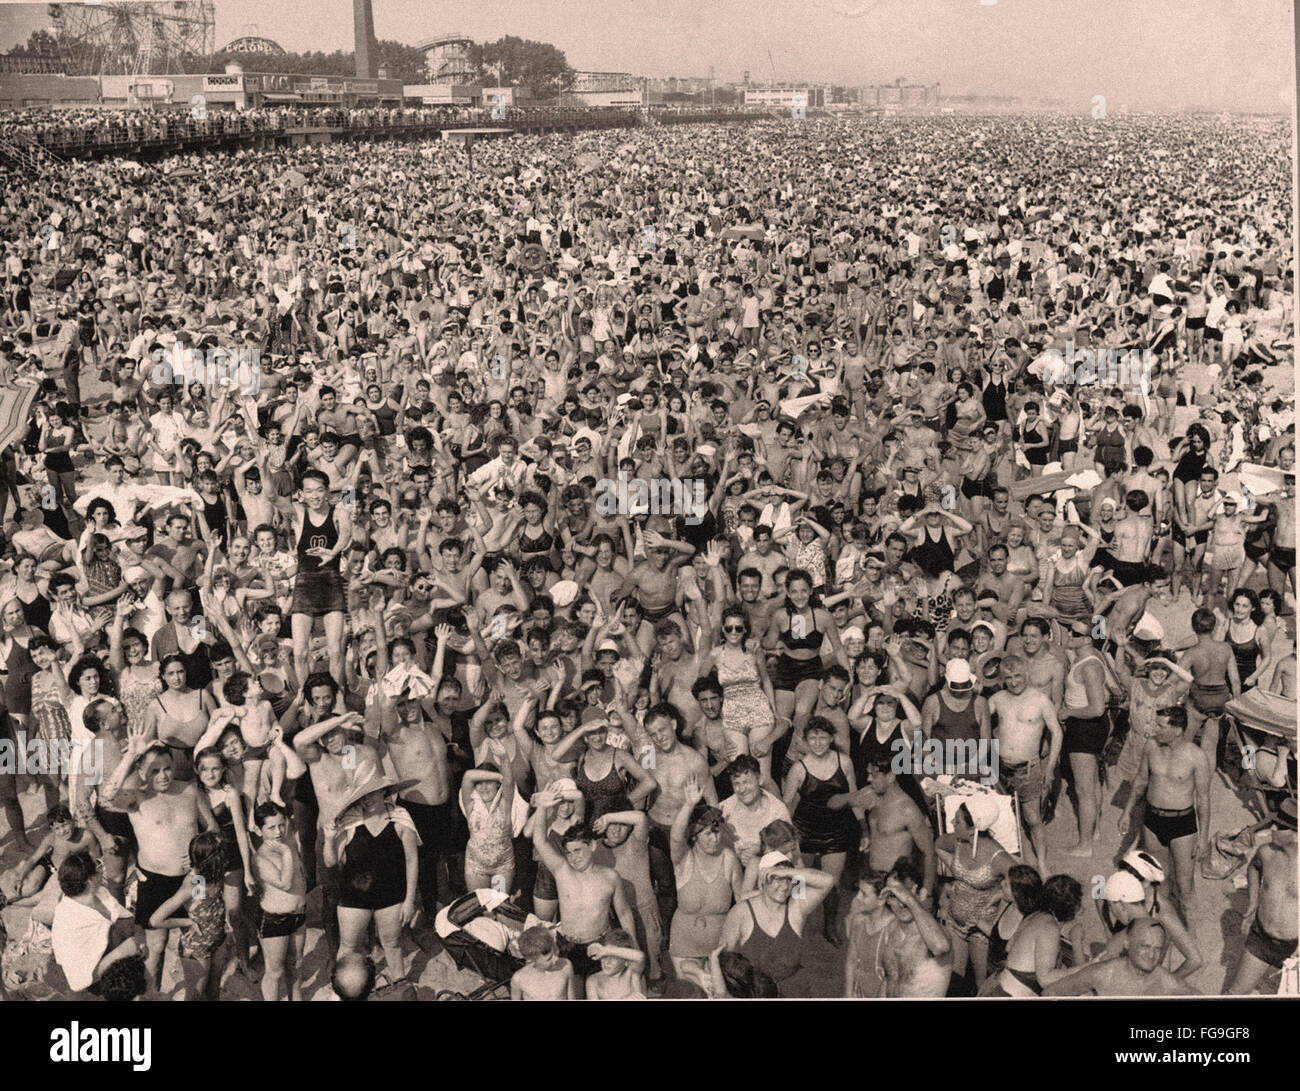 Crowd at Coney Island during the July heatwave     1940 - Stock Image